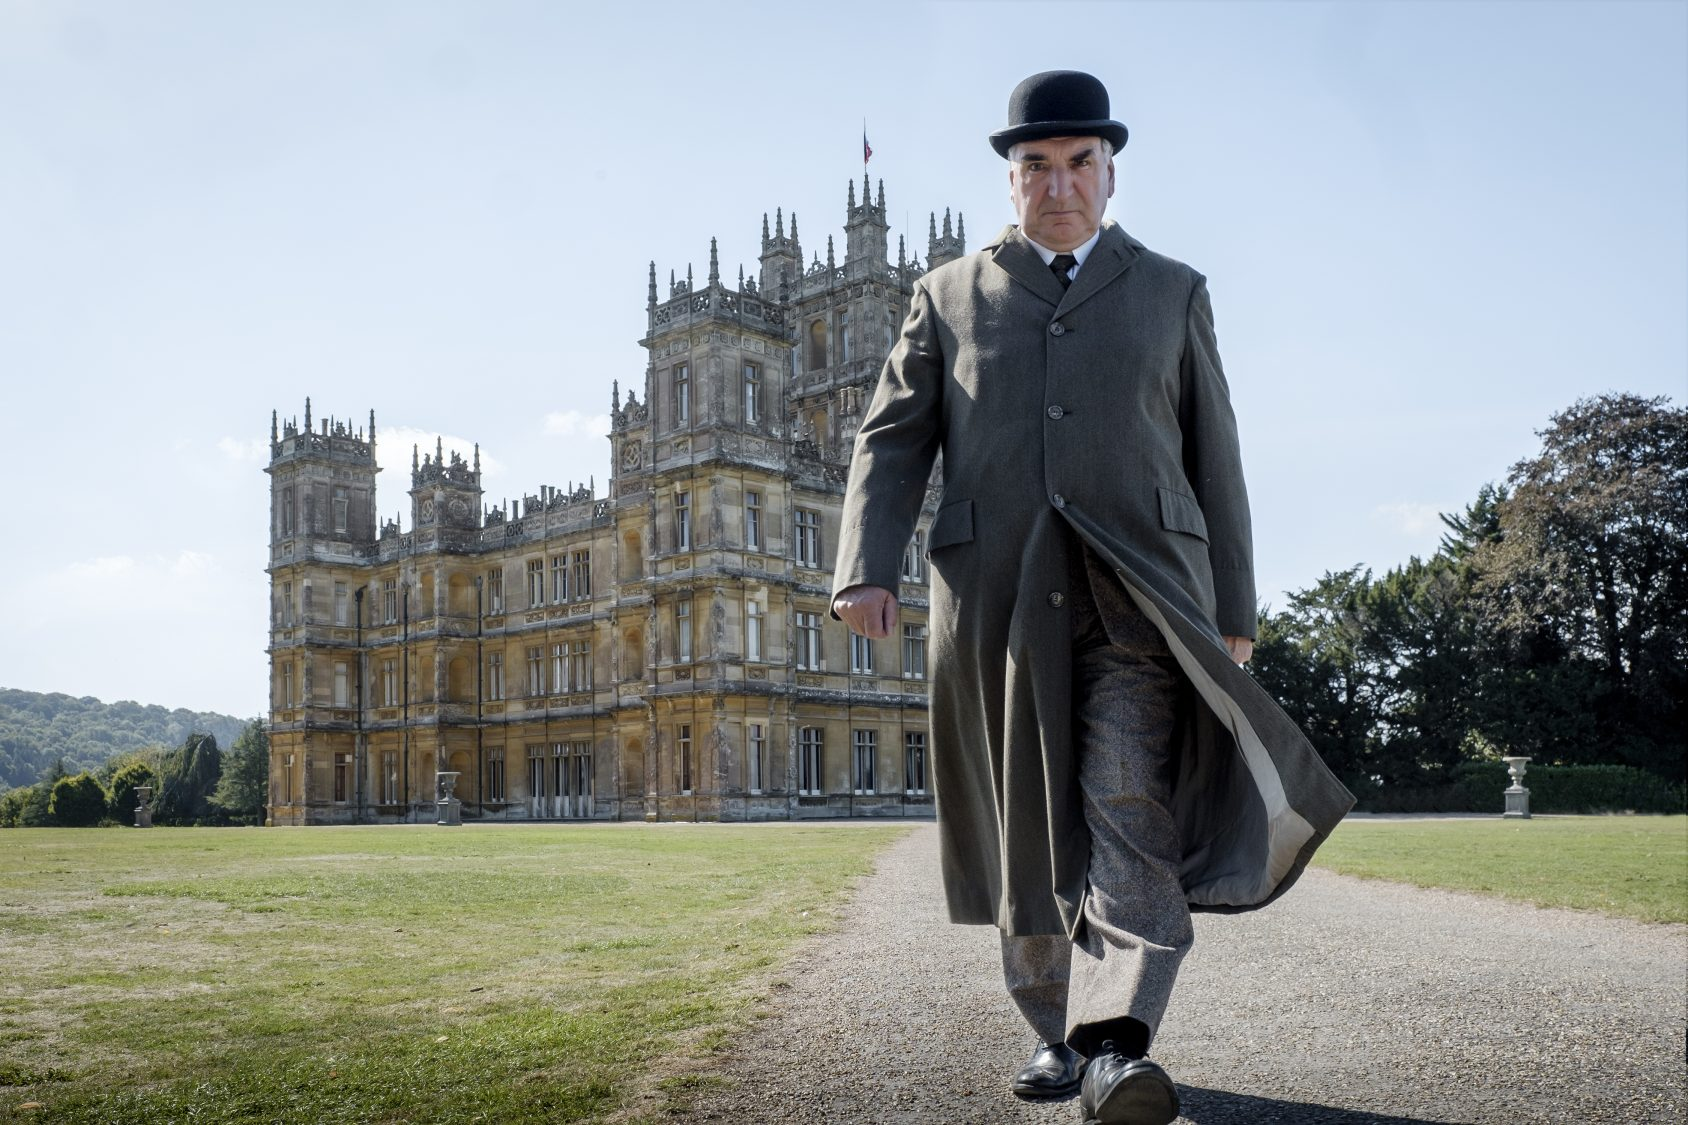 Bryn Mawr Film Institute to hold premiere event for 'Downton Abbey'